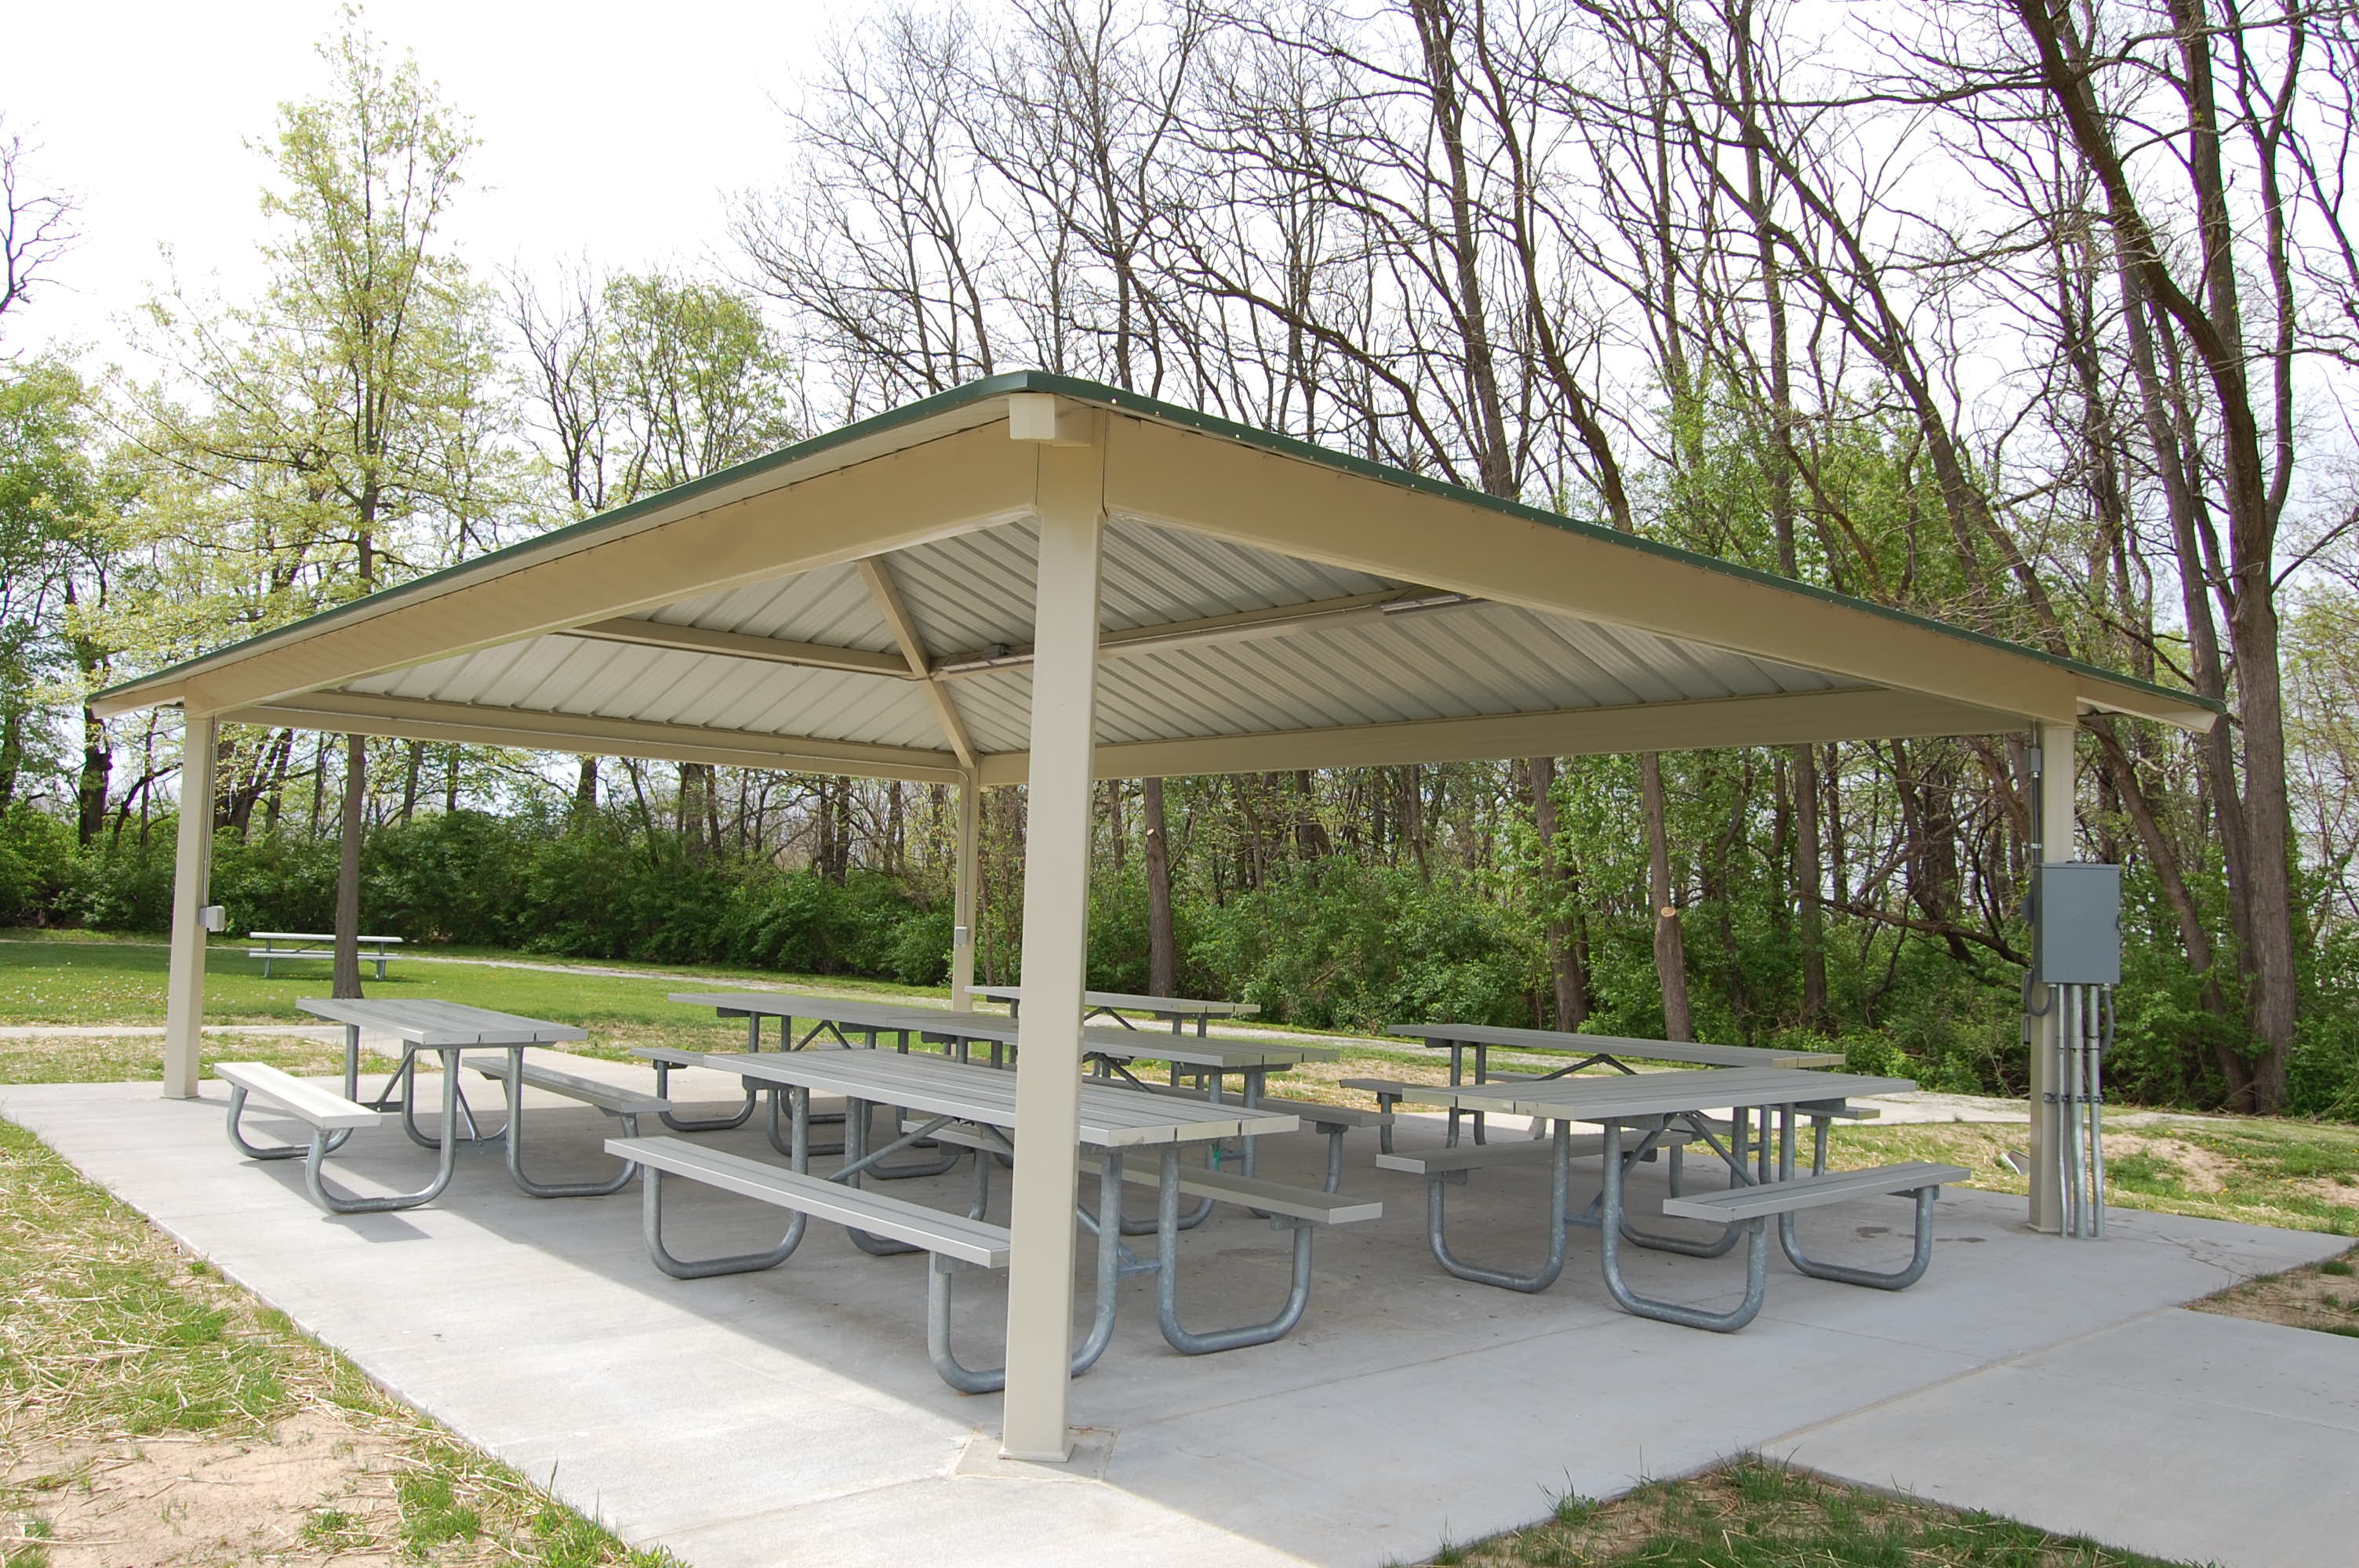 Small Park Shelters : Shelters quincy park district